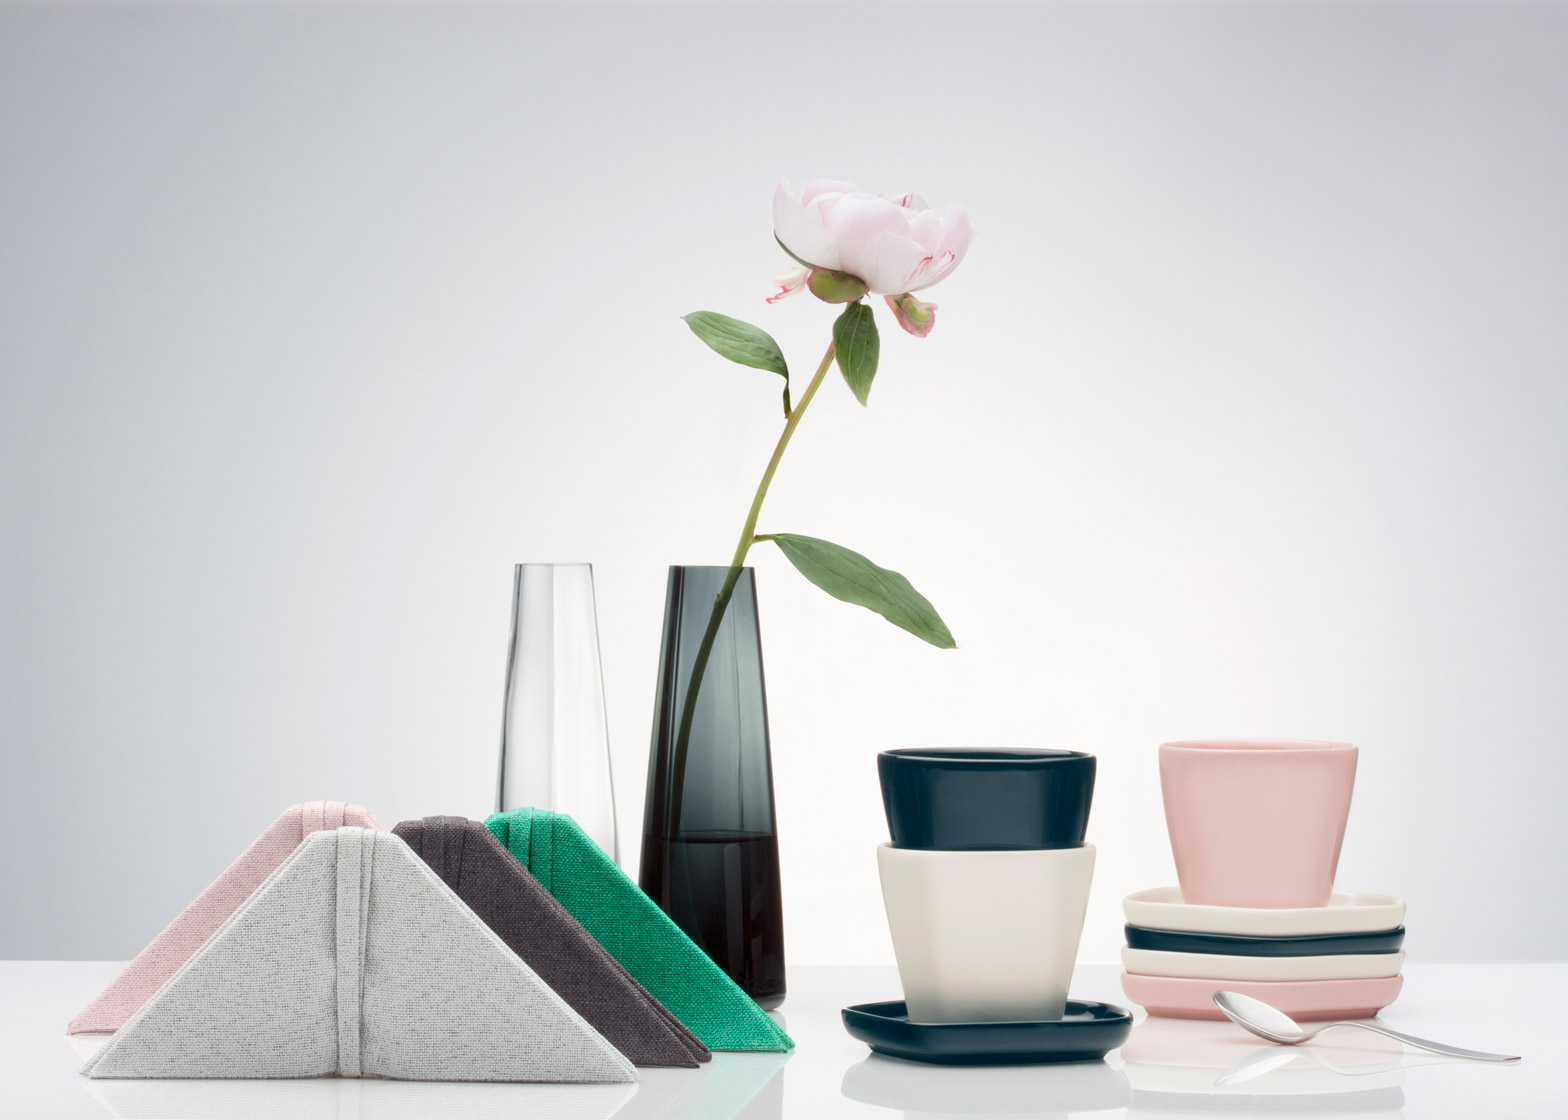 Iiittala x Issey Miyake collaboration for homeware collection at Stockholm Design Fair 2016